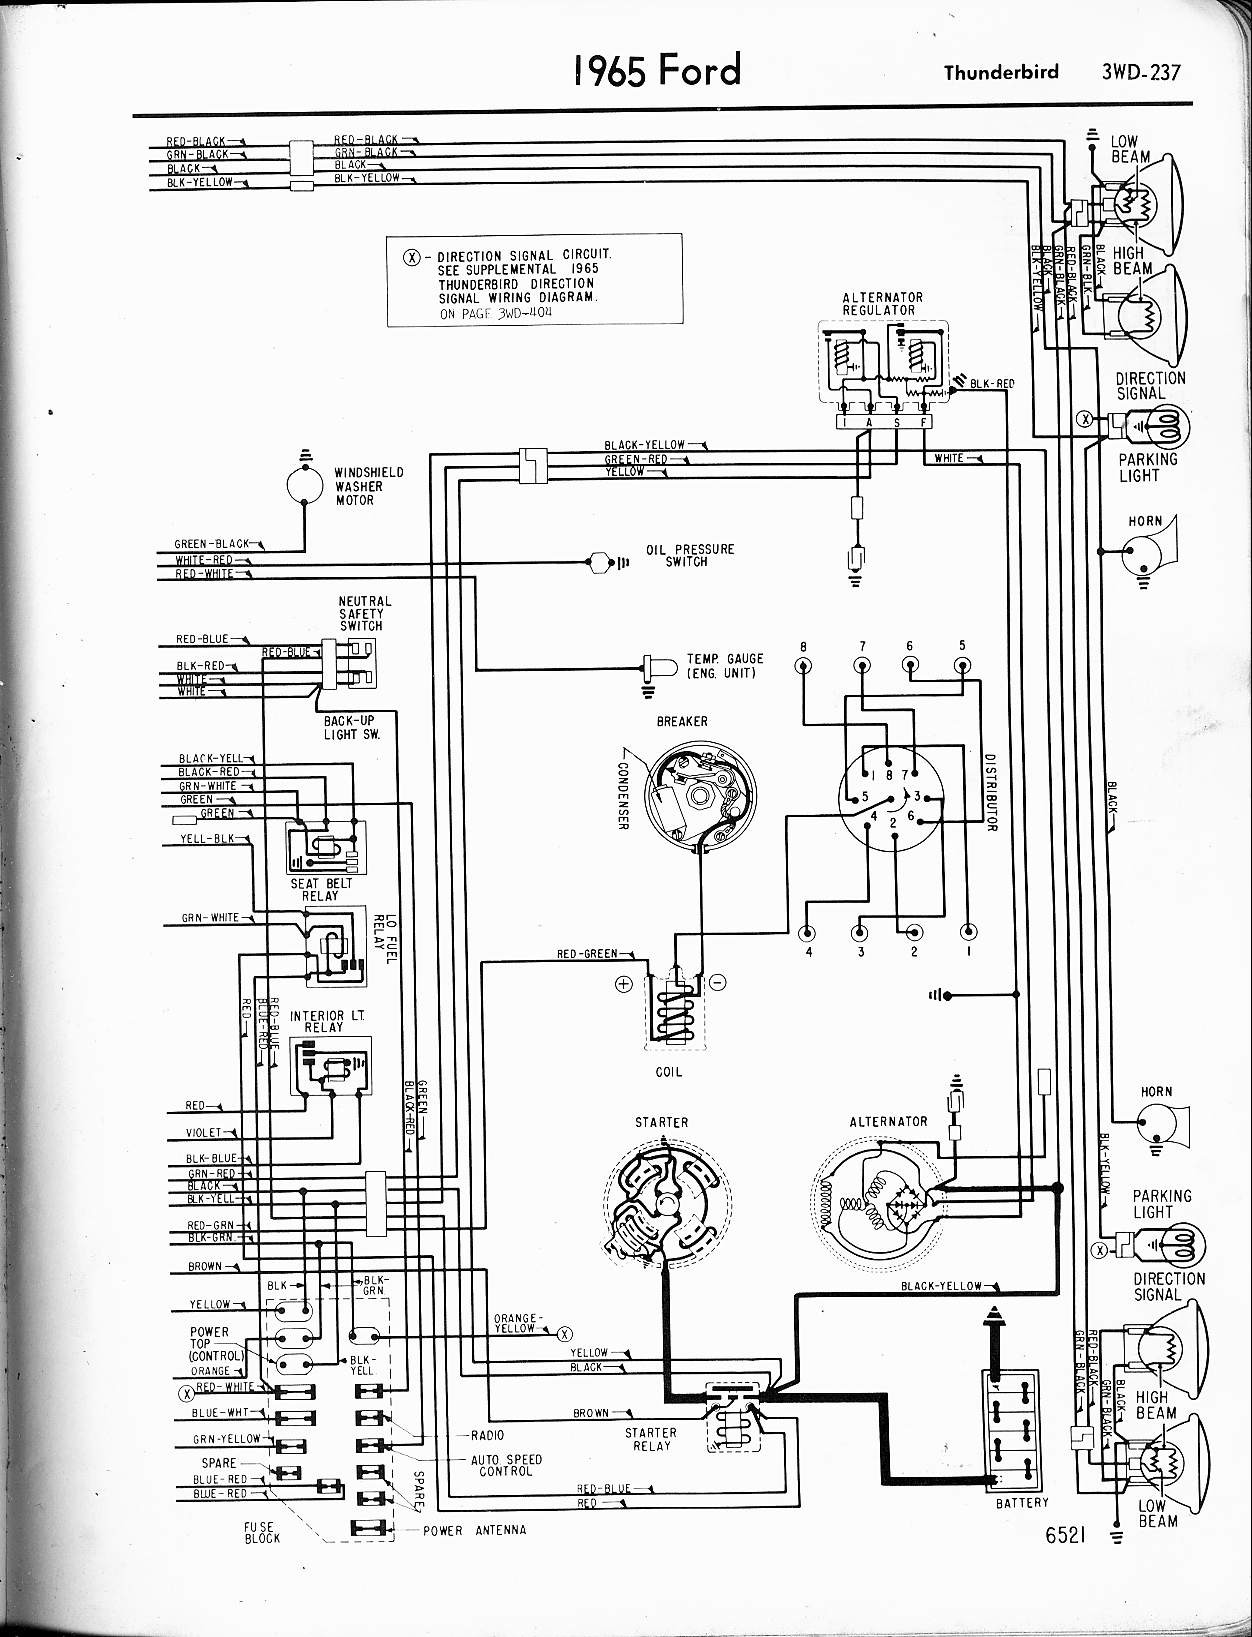 1964 galaxie radio diagram picture circuit diagram symbols u2022 rh veturecapitaltrust co